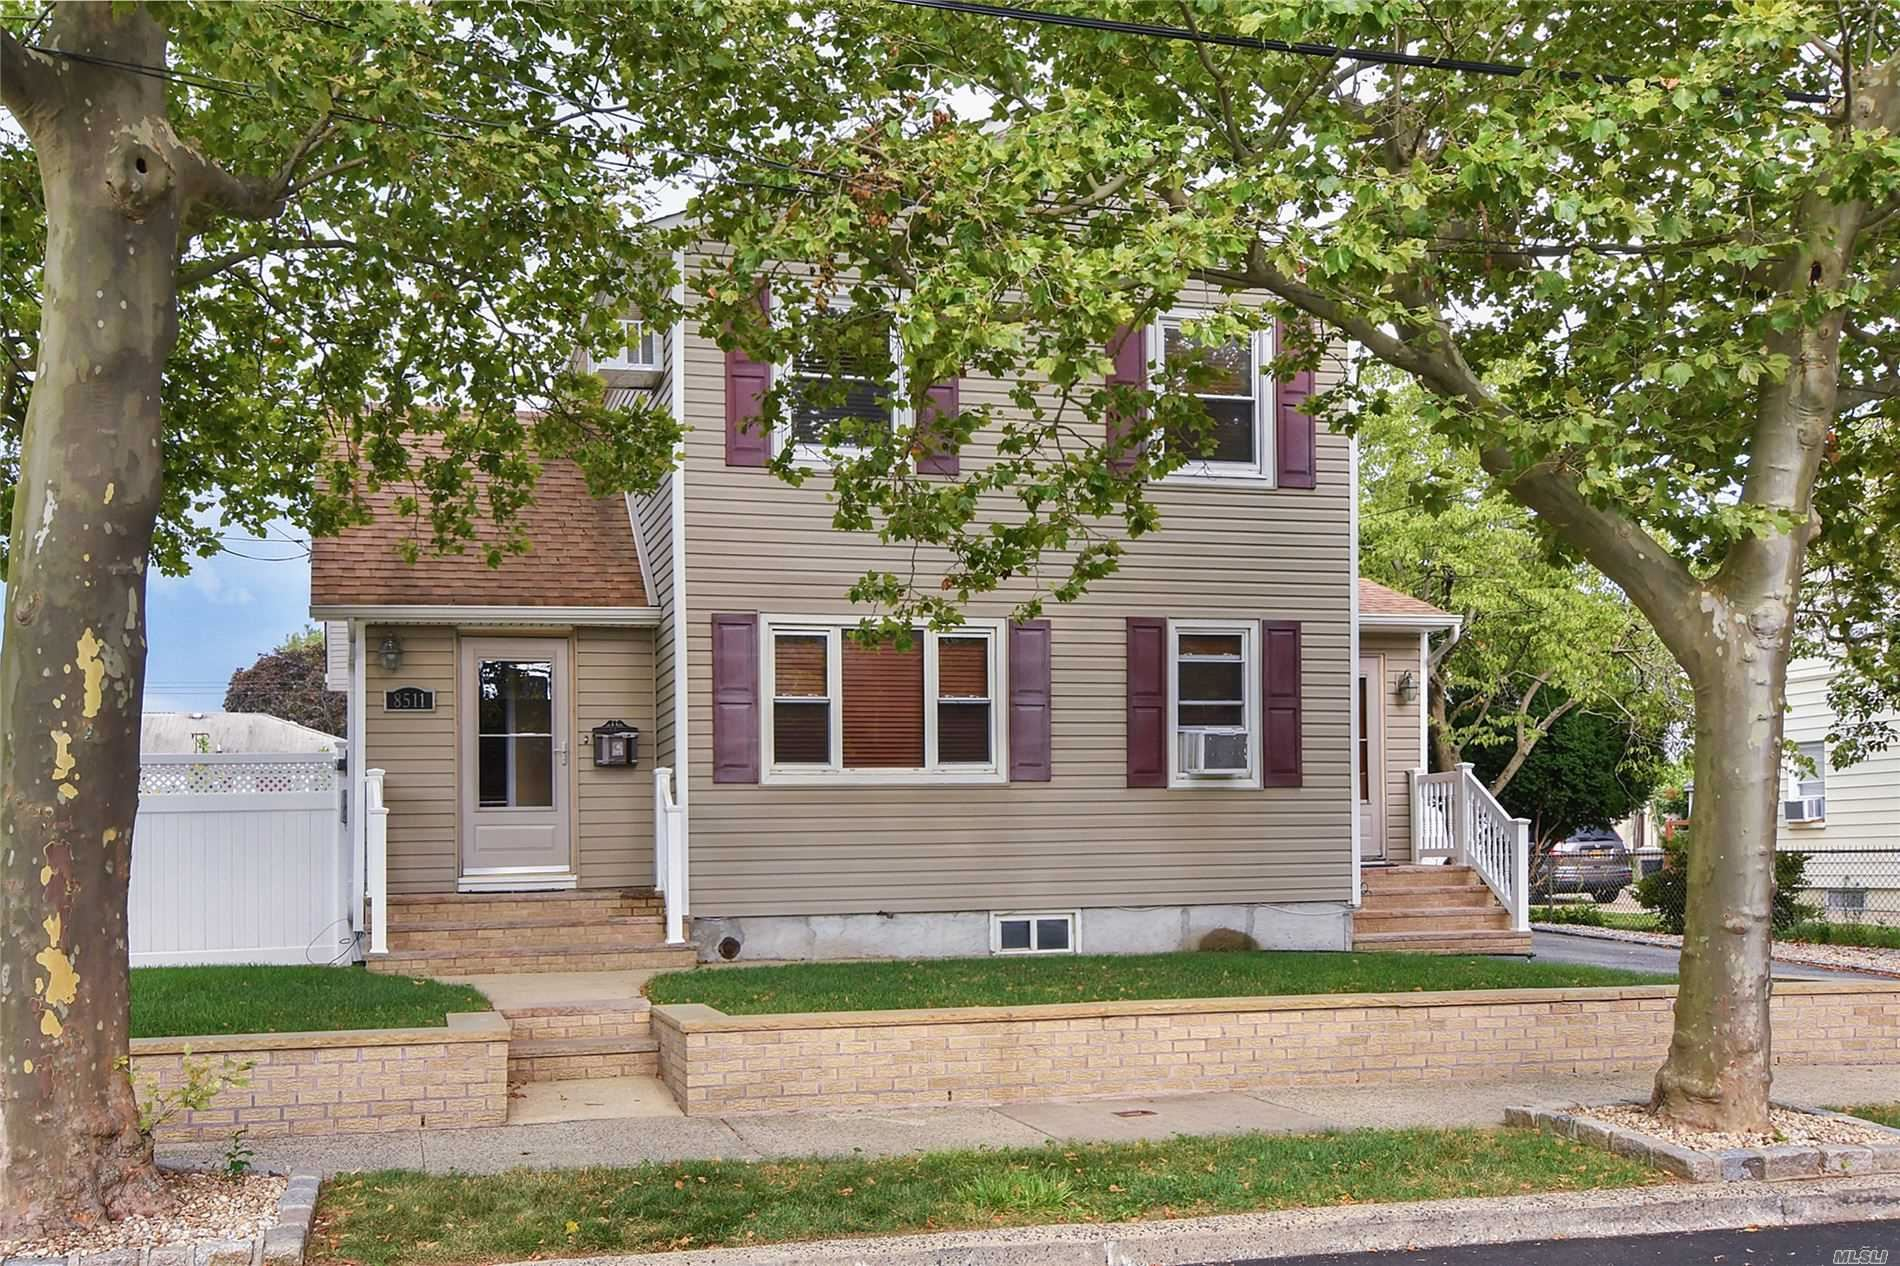 85-11 259th St., Floral Park, NY 11001 - MLS#: 3236759